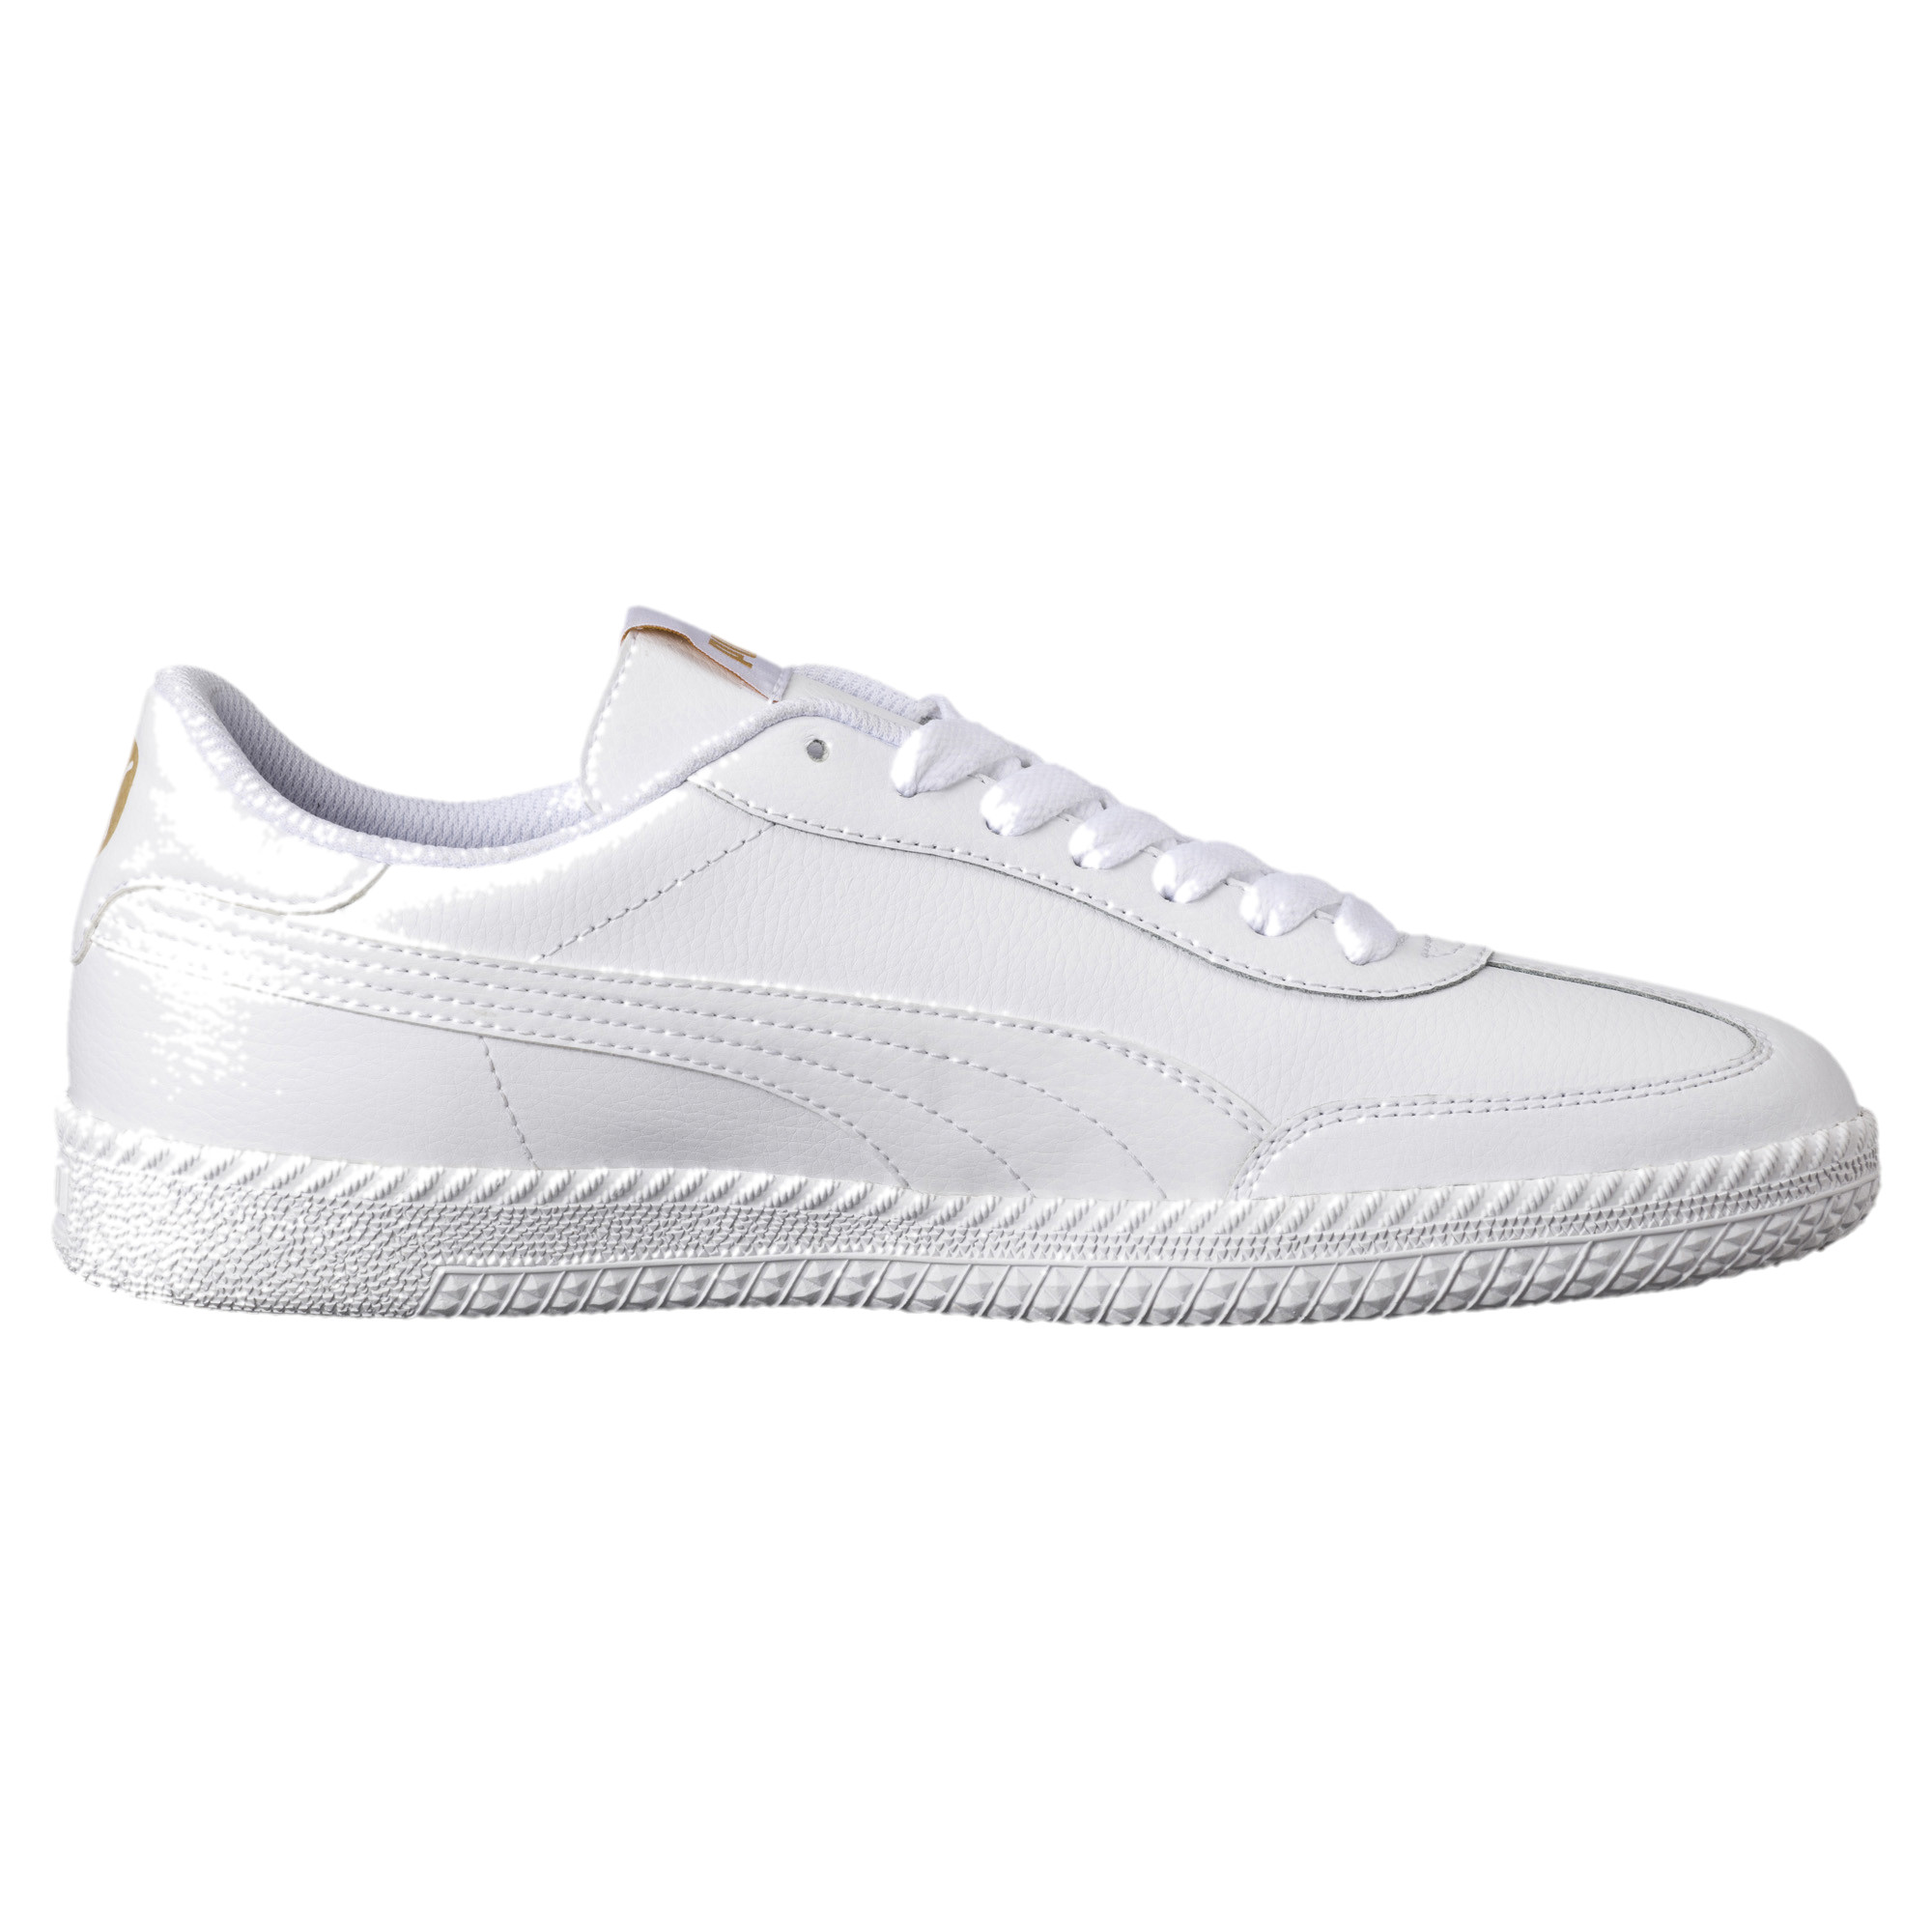 b042ef0b0d Details about PUMA Astro Cup Leather Trainers Men Shoe Basics